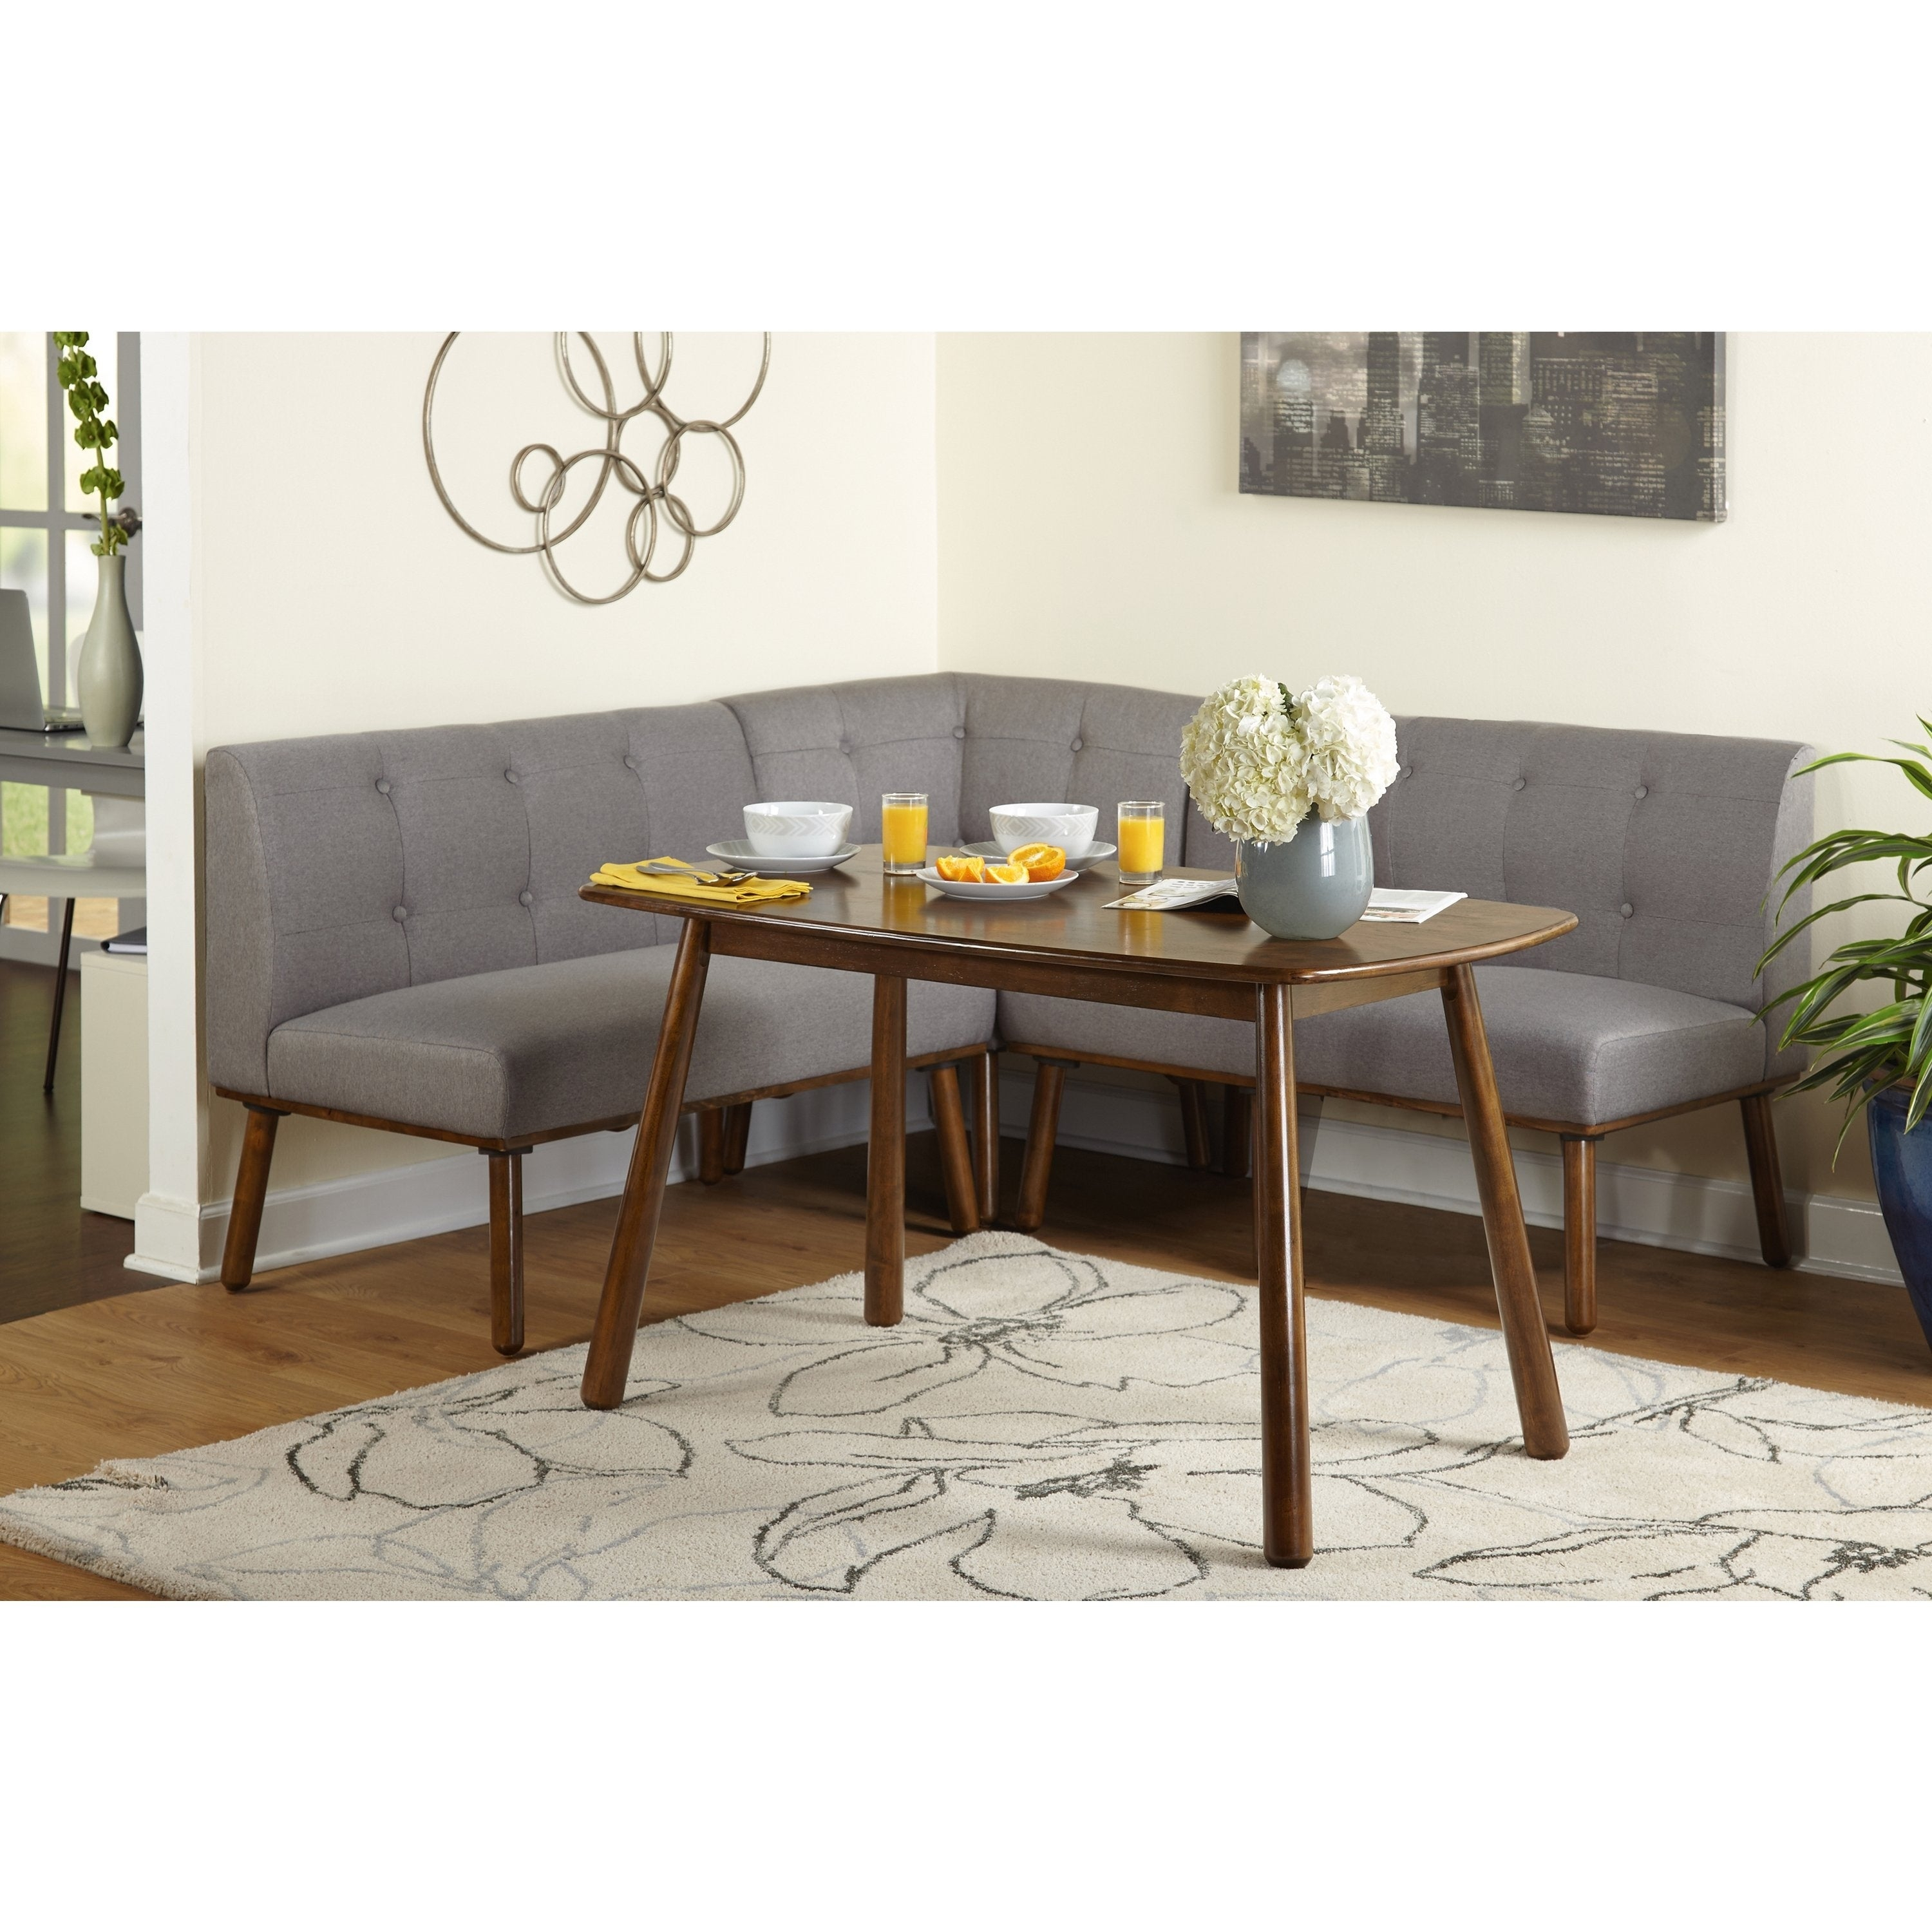 Rossiter 3 Piece Dining Sets Throughout Most Recent Buy 3 Piece Sets Kitchen & Dining Room Sets Online At Overstock (#15 of 20)